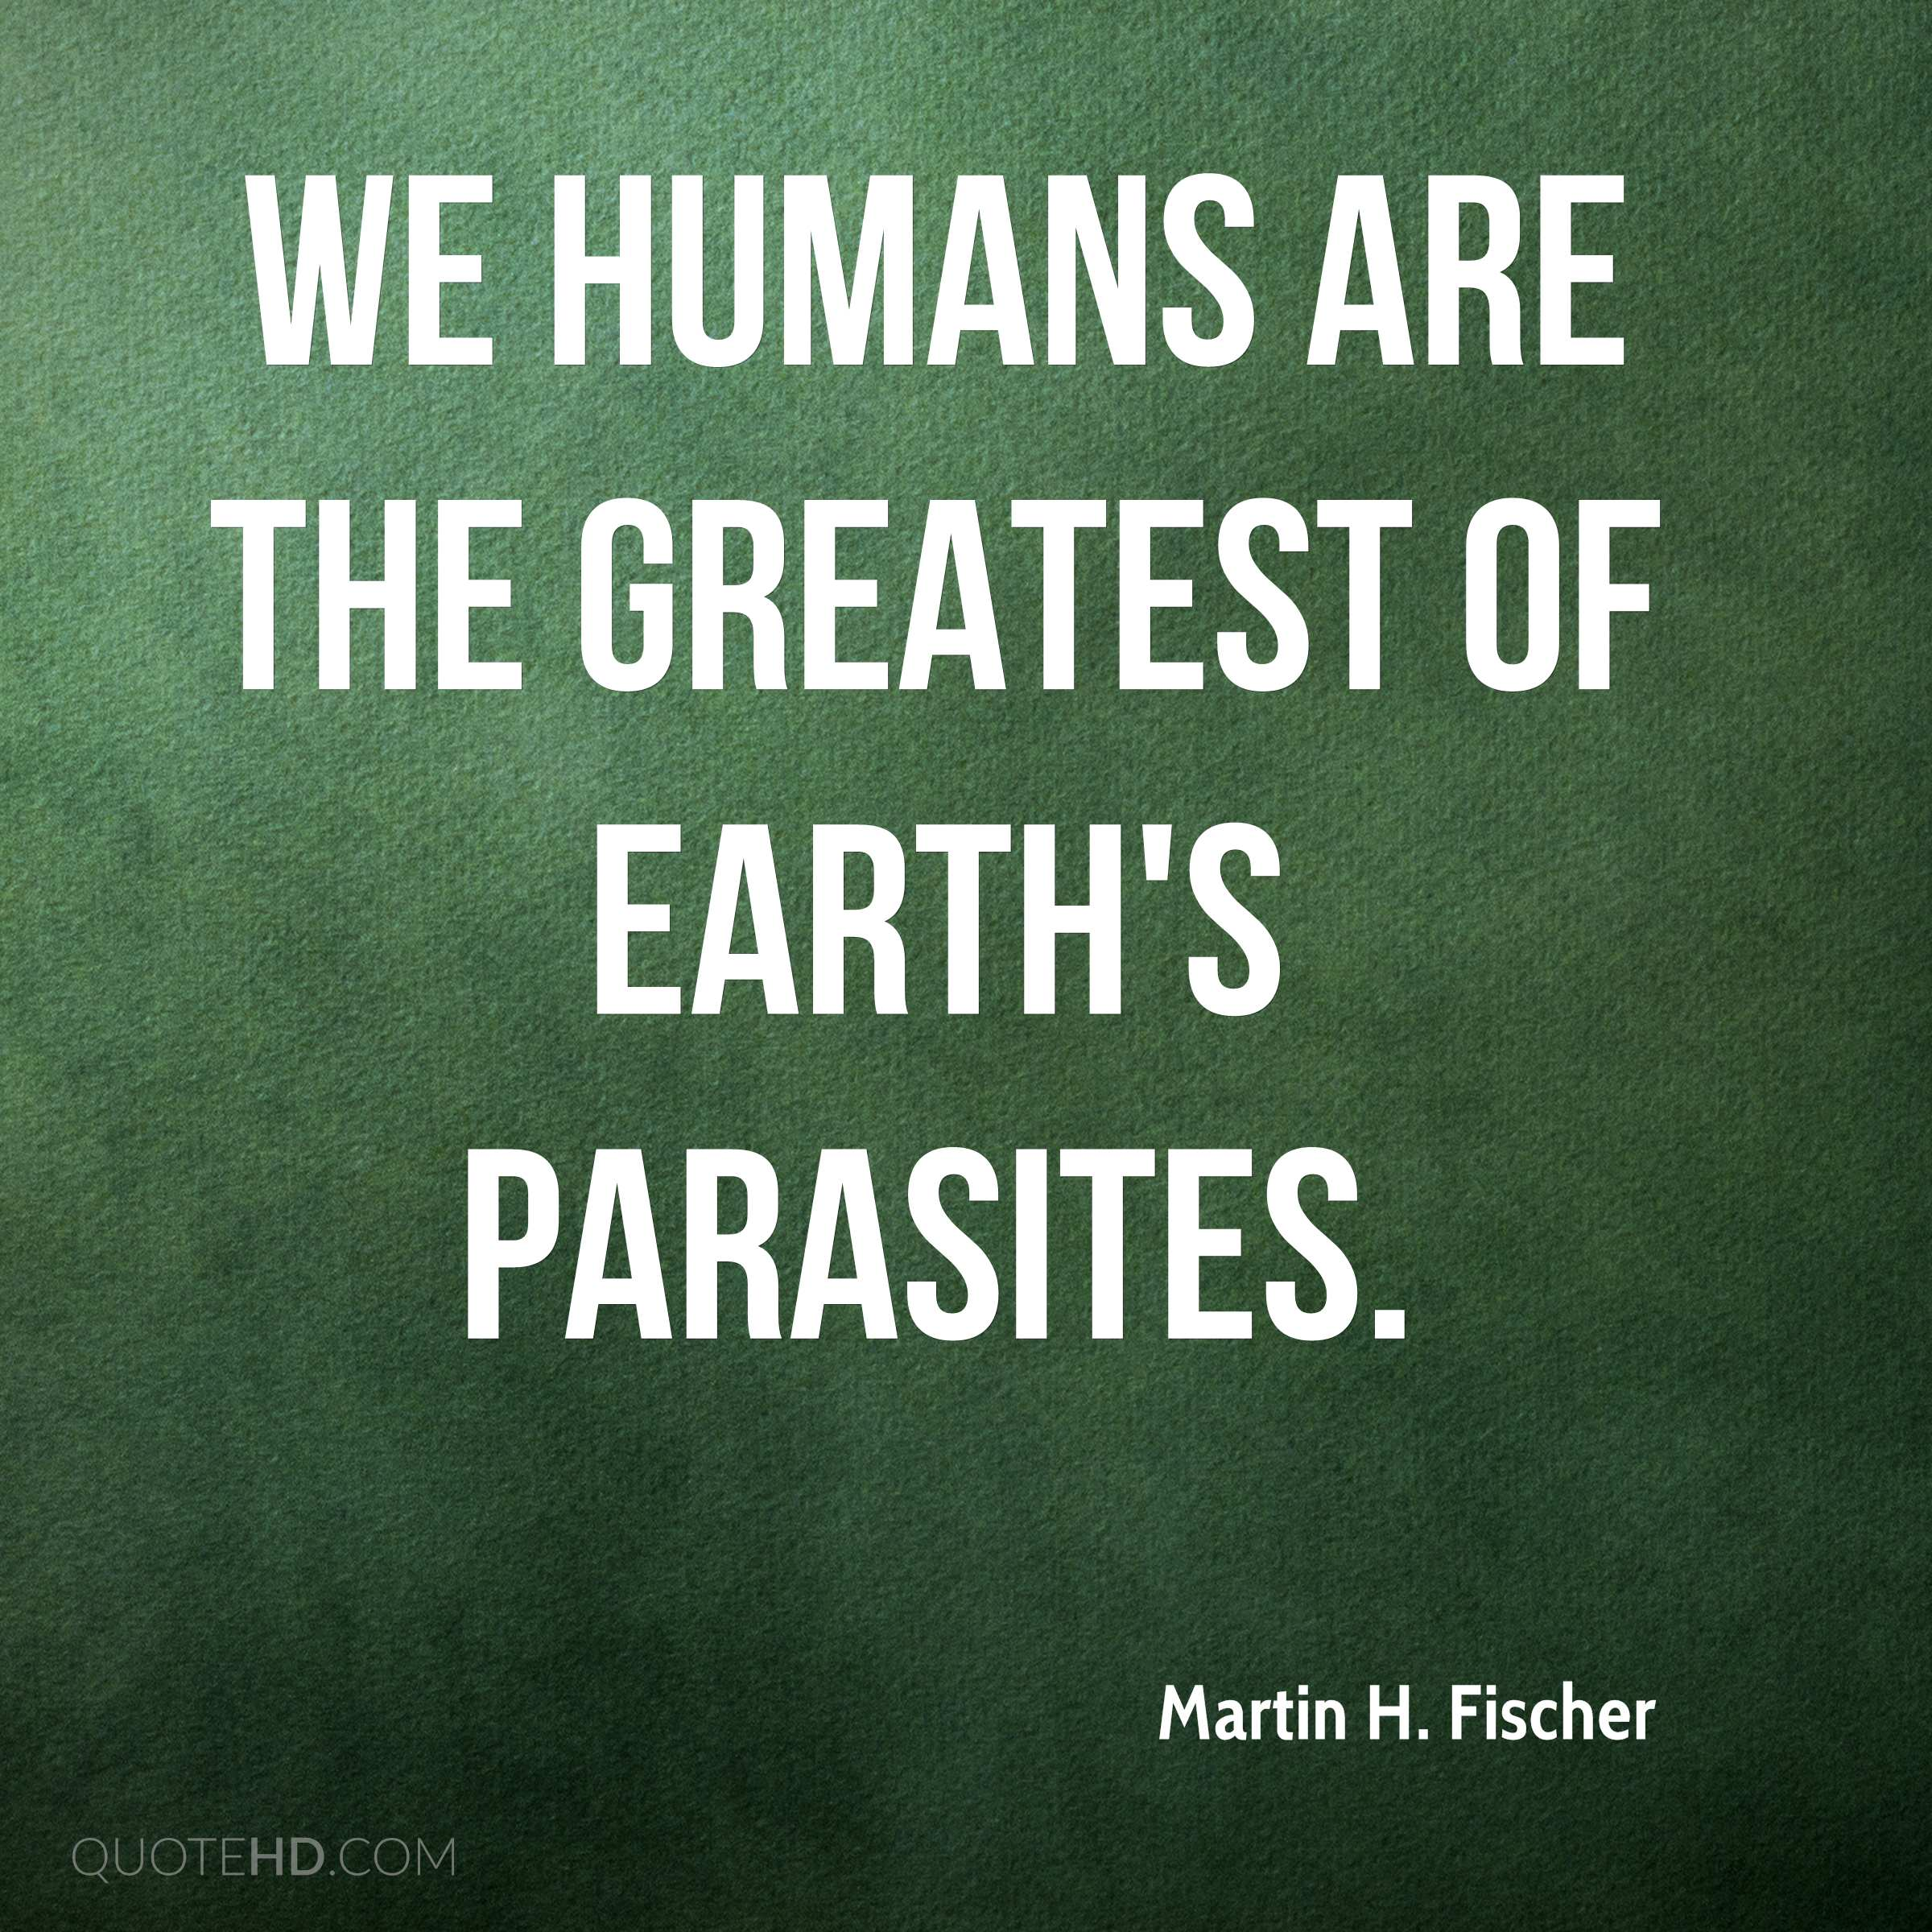 We humans are the greatest of earth's parasites.